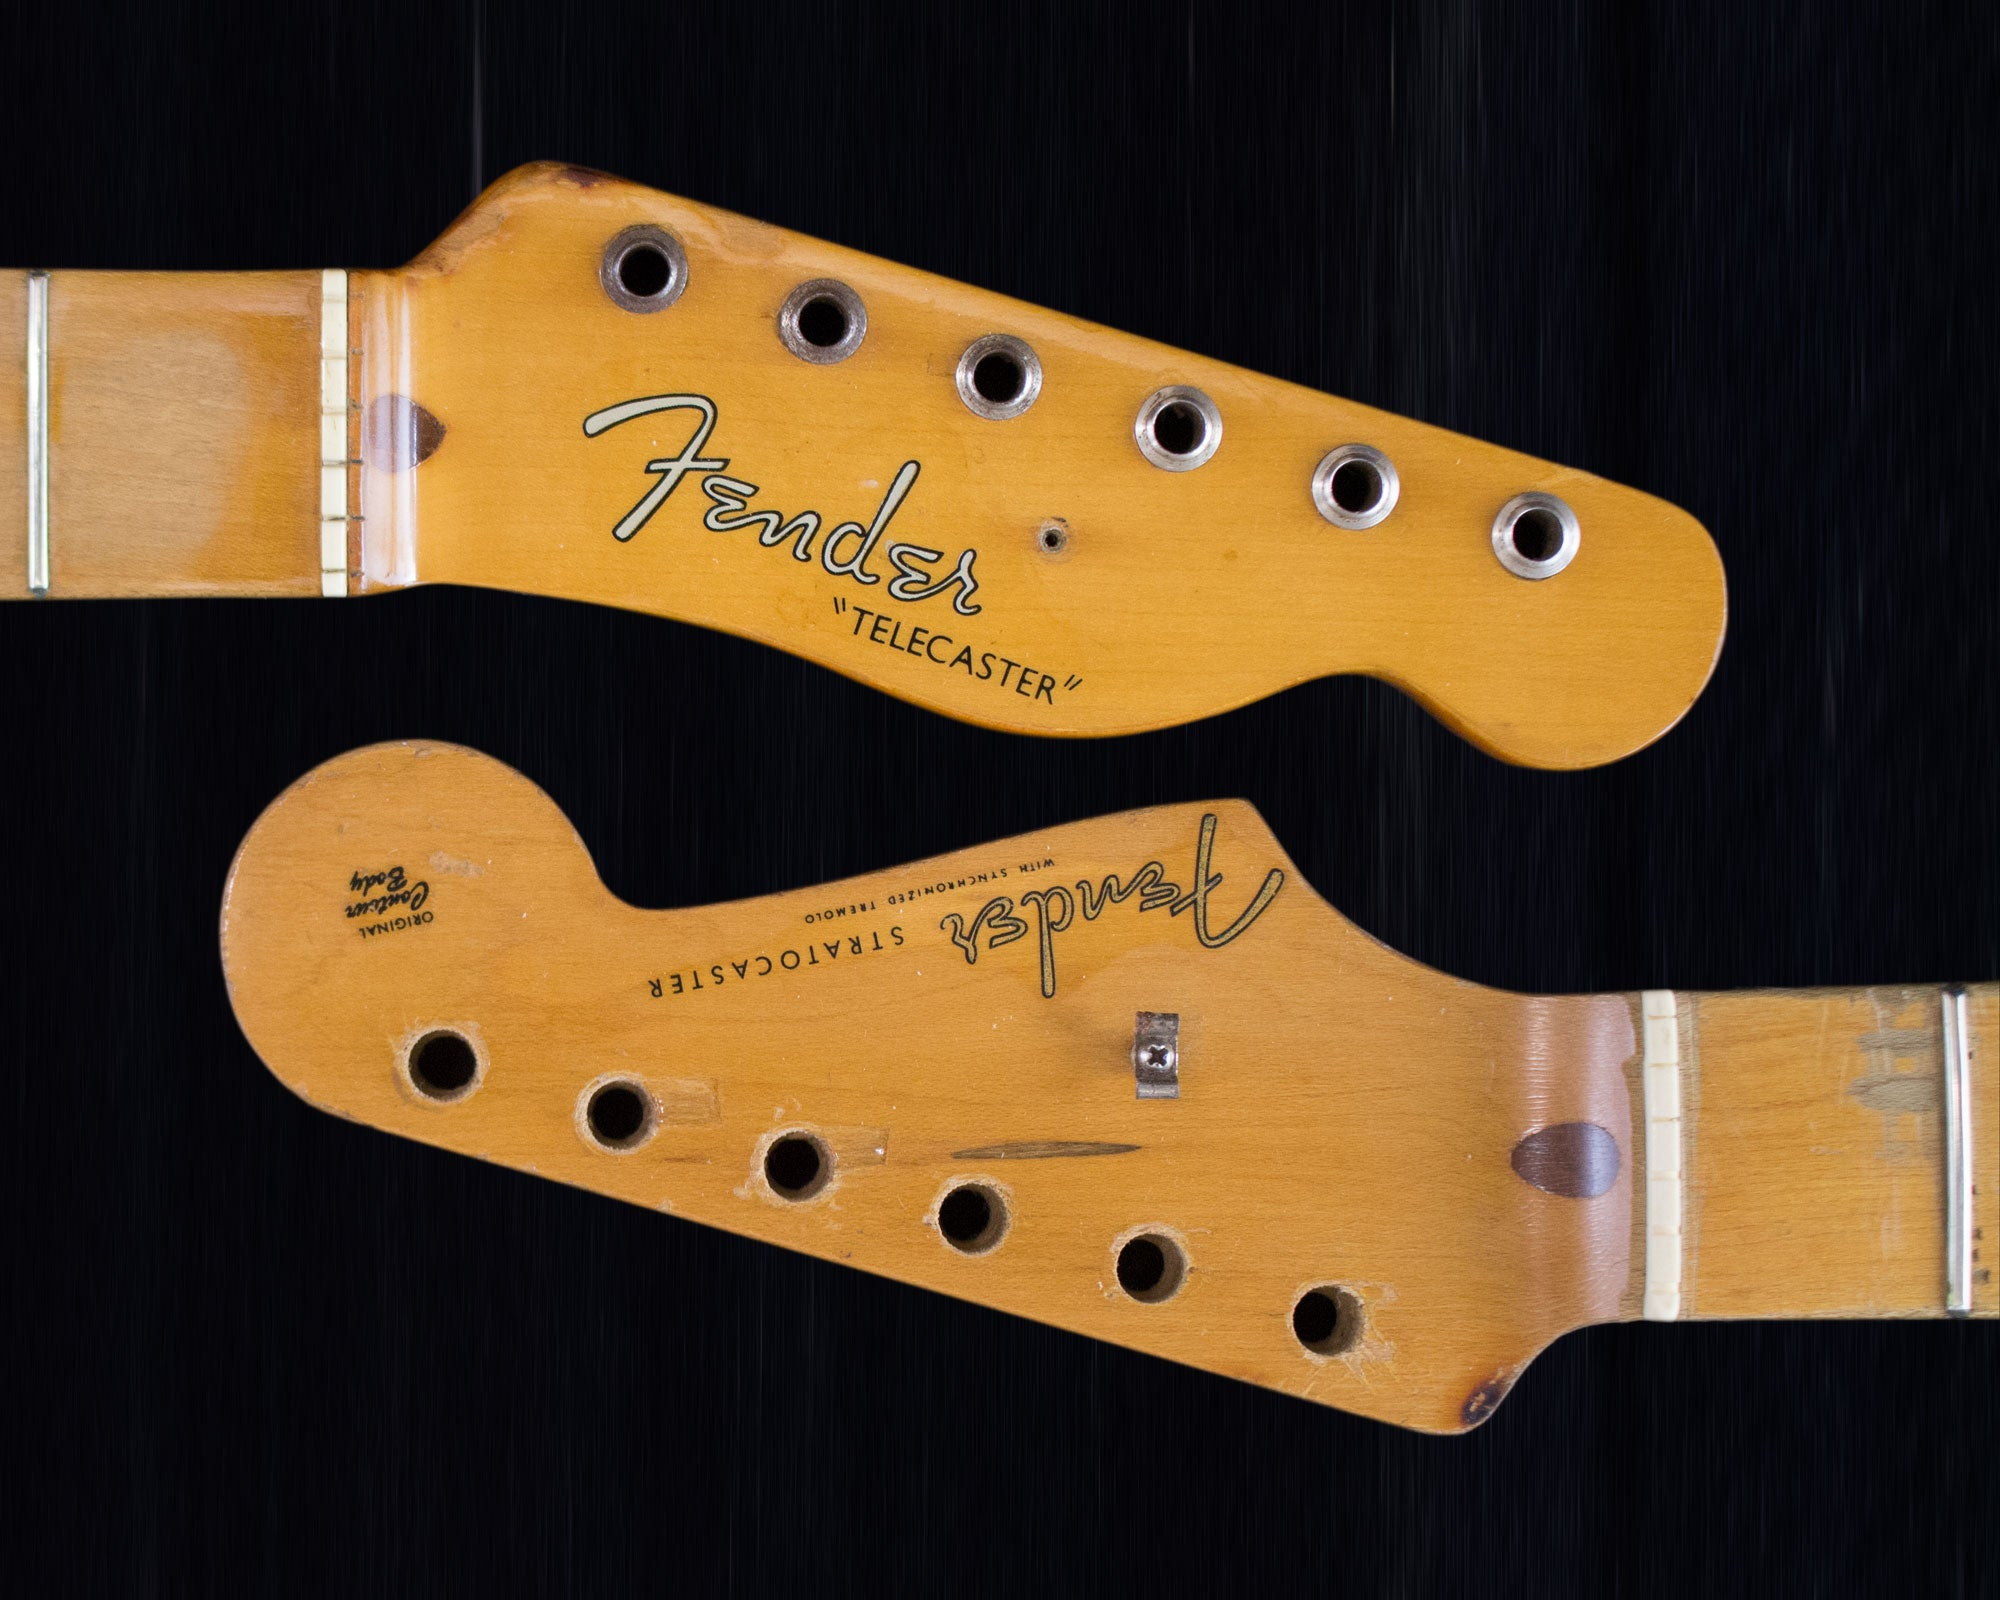 Fender headstock detail